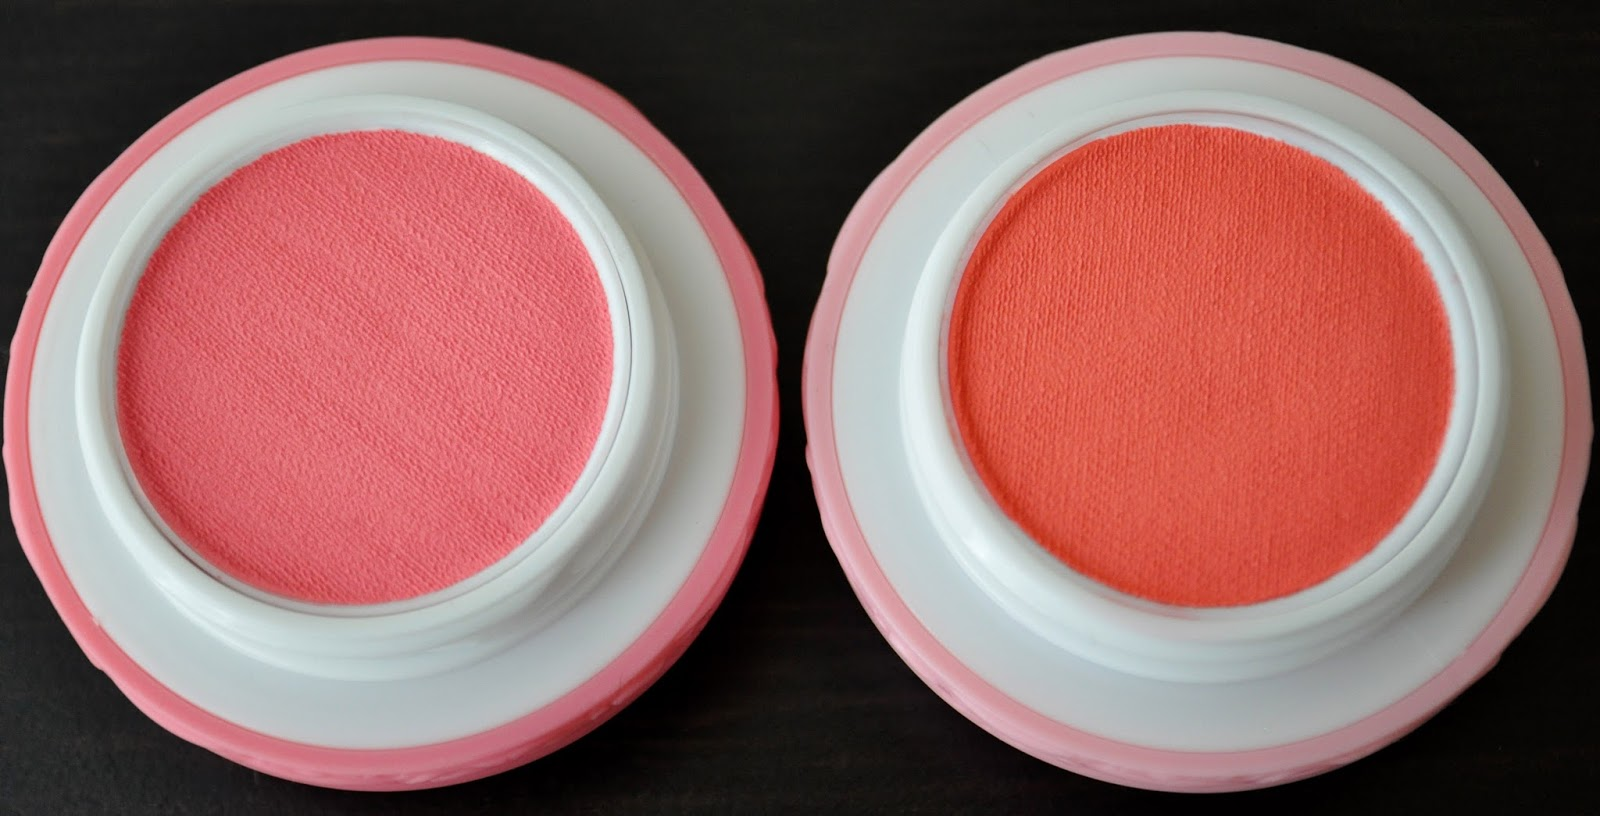 So Lonely In Gorgeous April 2018 Tenga Play Gel Rich Aqua The Macaron Shaped Packaging Of Le Teint Blush Blender Duos 01 Rose Whipped Cream Pistachio And 02 Coral